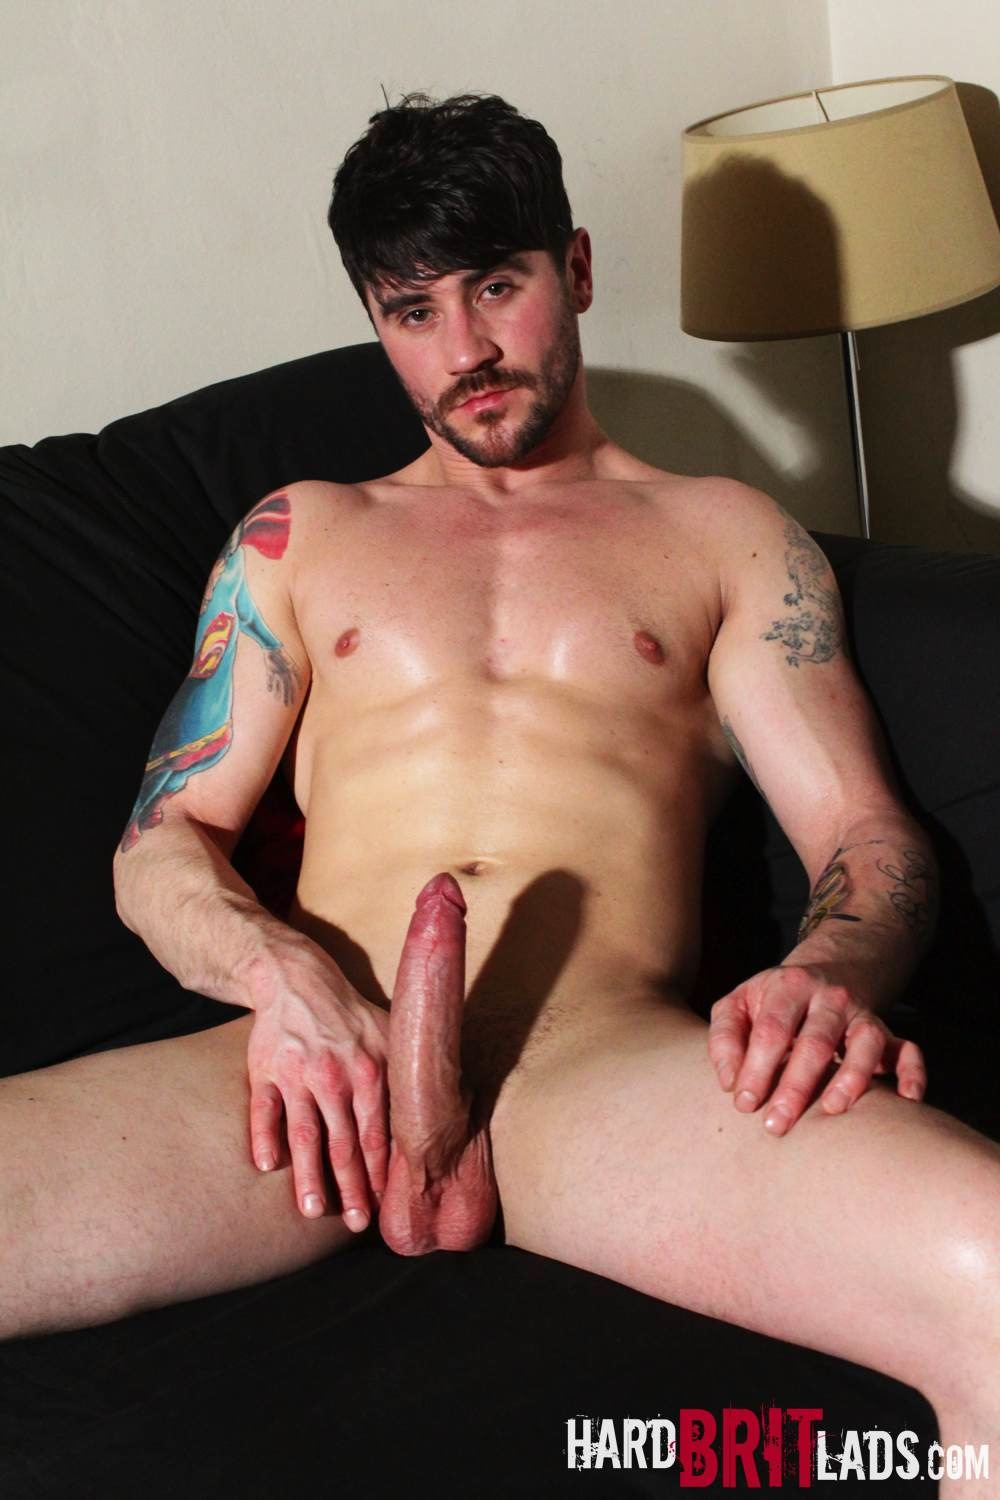 9 inch cock giving a creampie 10